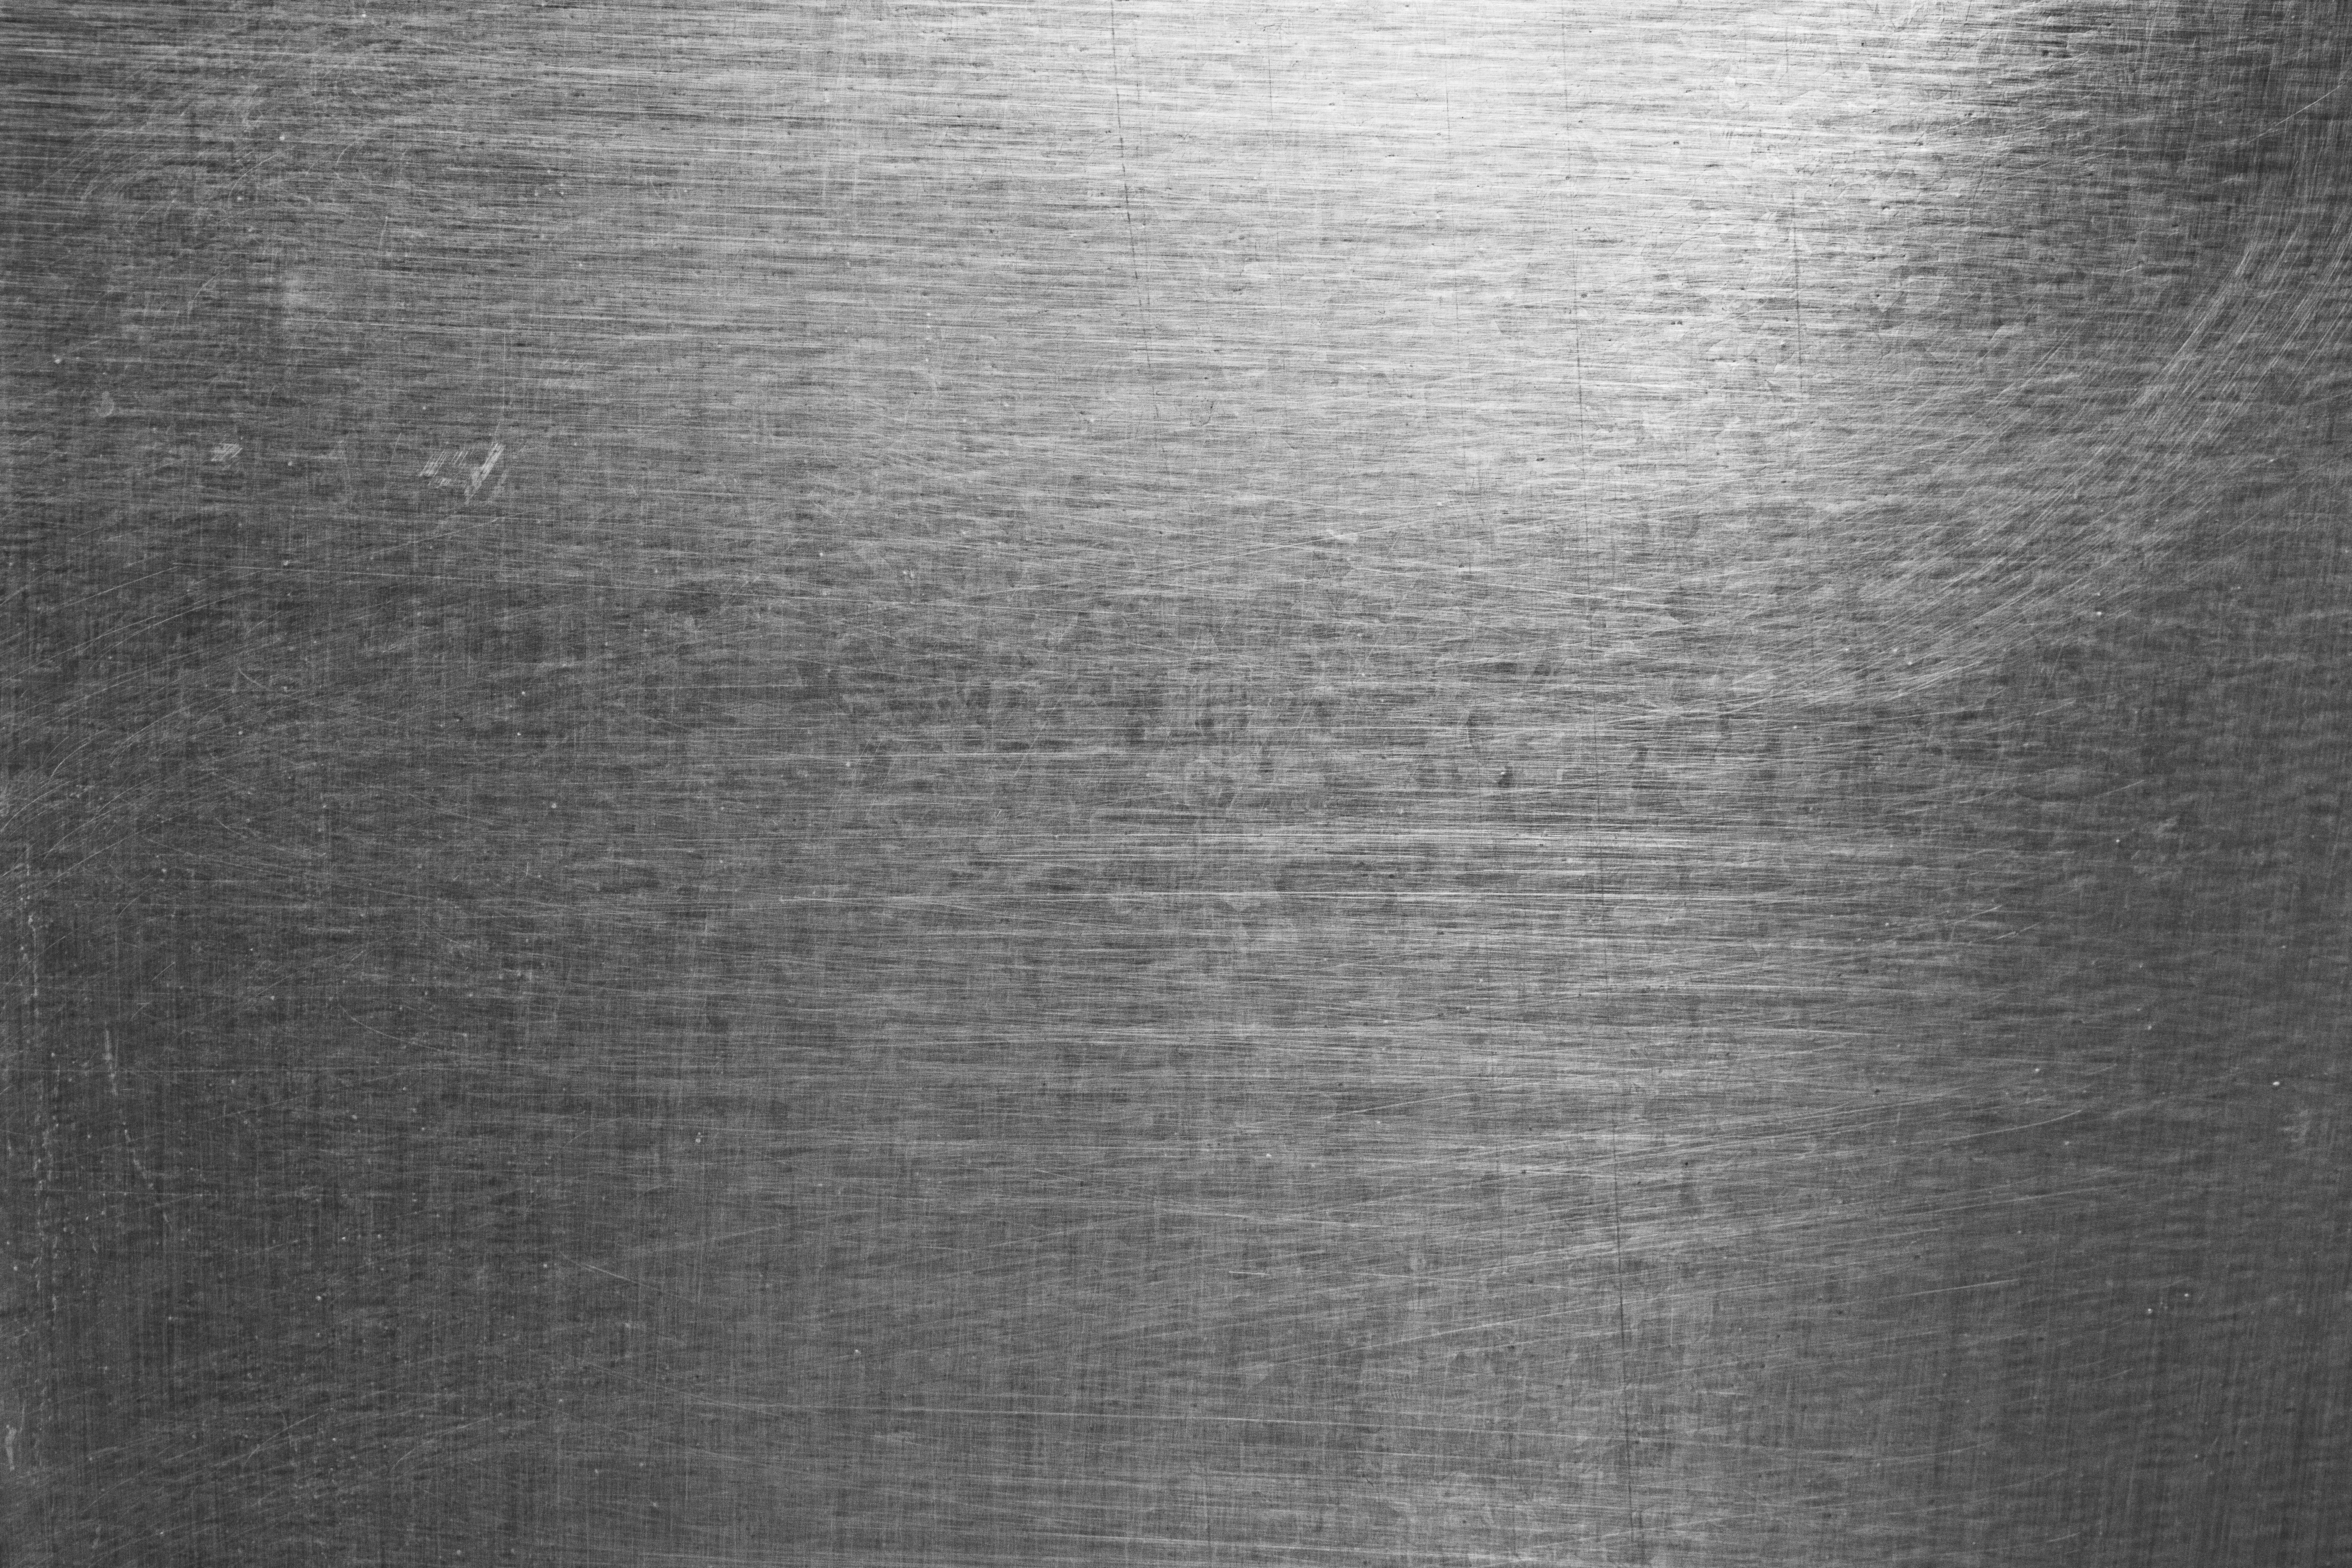 high contrast brushed scratched metal sheet